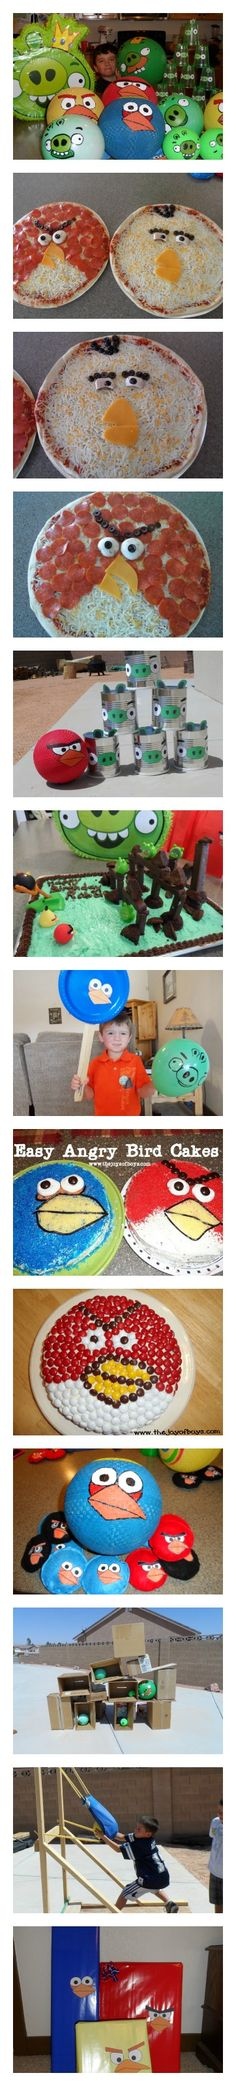 Everything you need to throw an amazing Angry Birds birthday party! Angry birds cakes, pizzas, party games, pinata and a giant slingshot.  Trust me, you'll be the coolest mom in town.